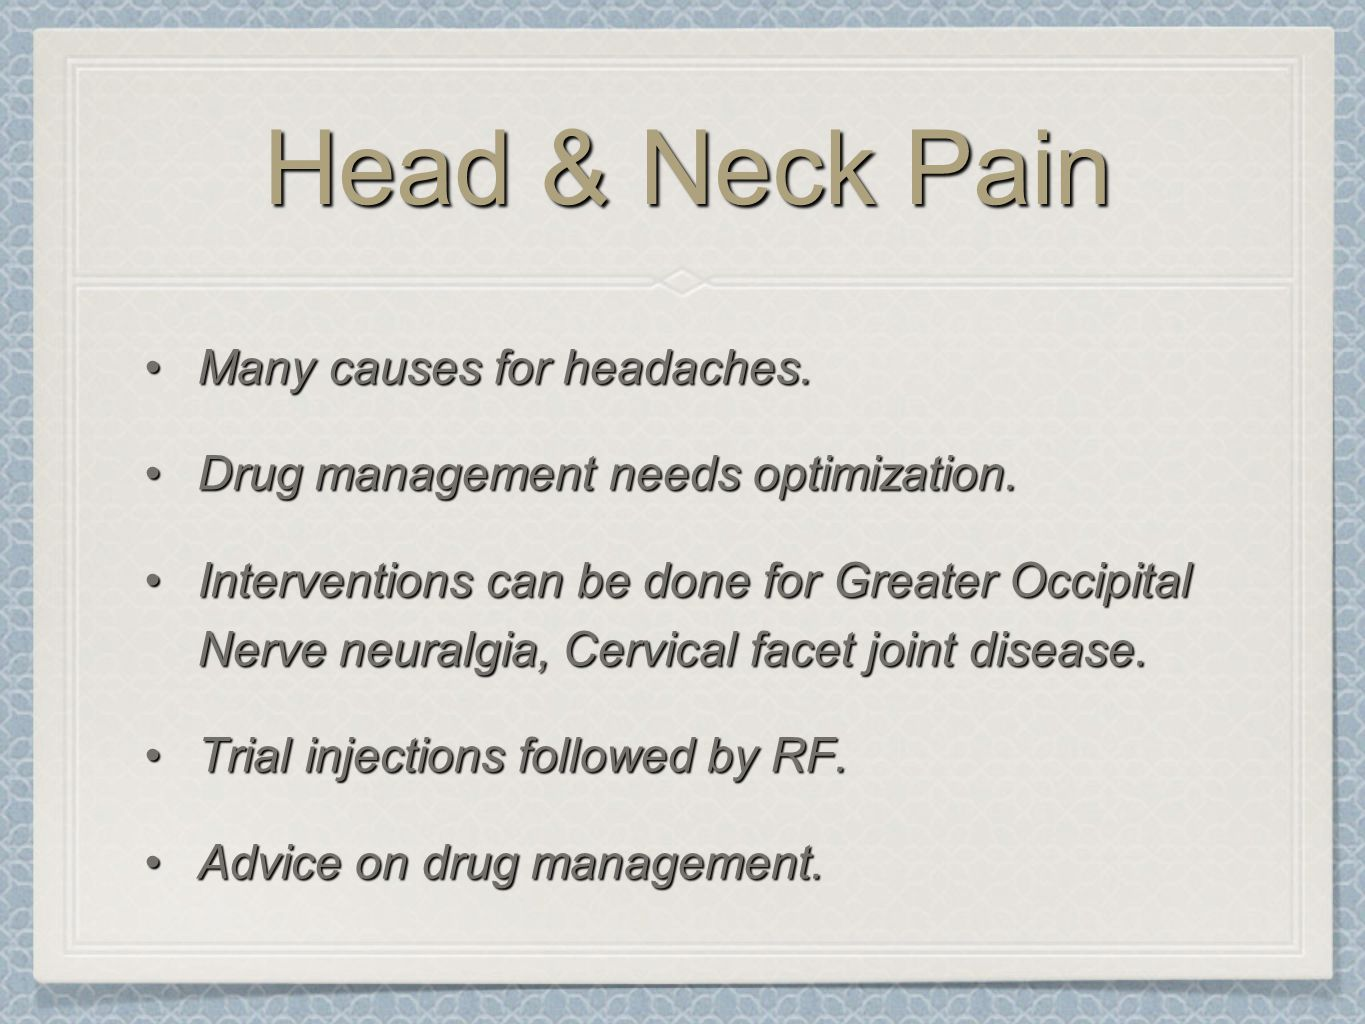 Head & Neck Pain Many causes for headaches.